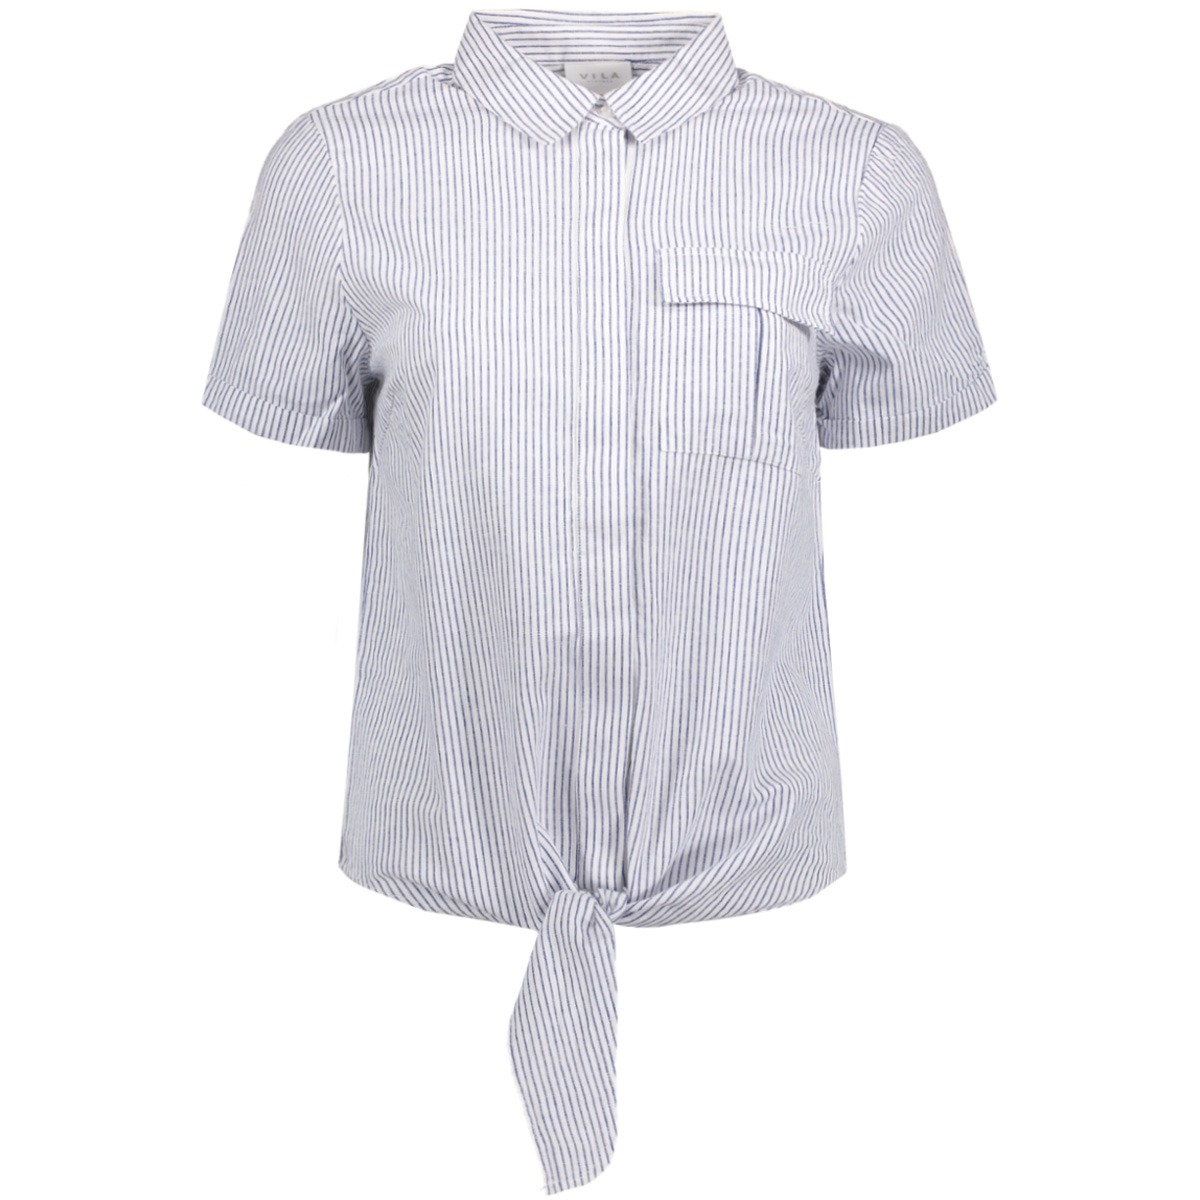 virosettan s/s shirt 14040018 vila blouse cloud dancer/ virosettan